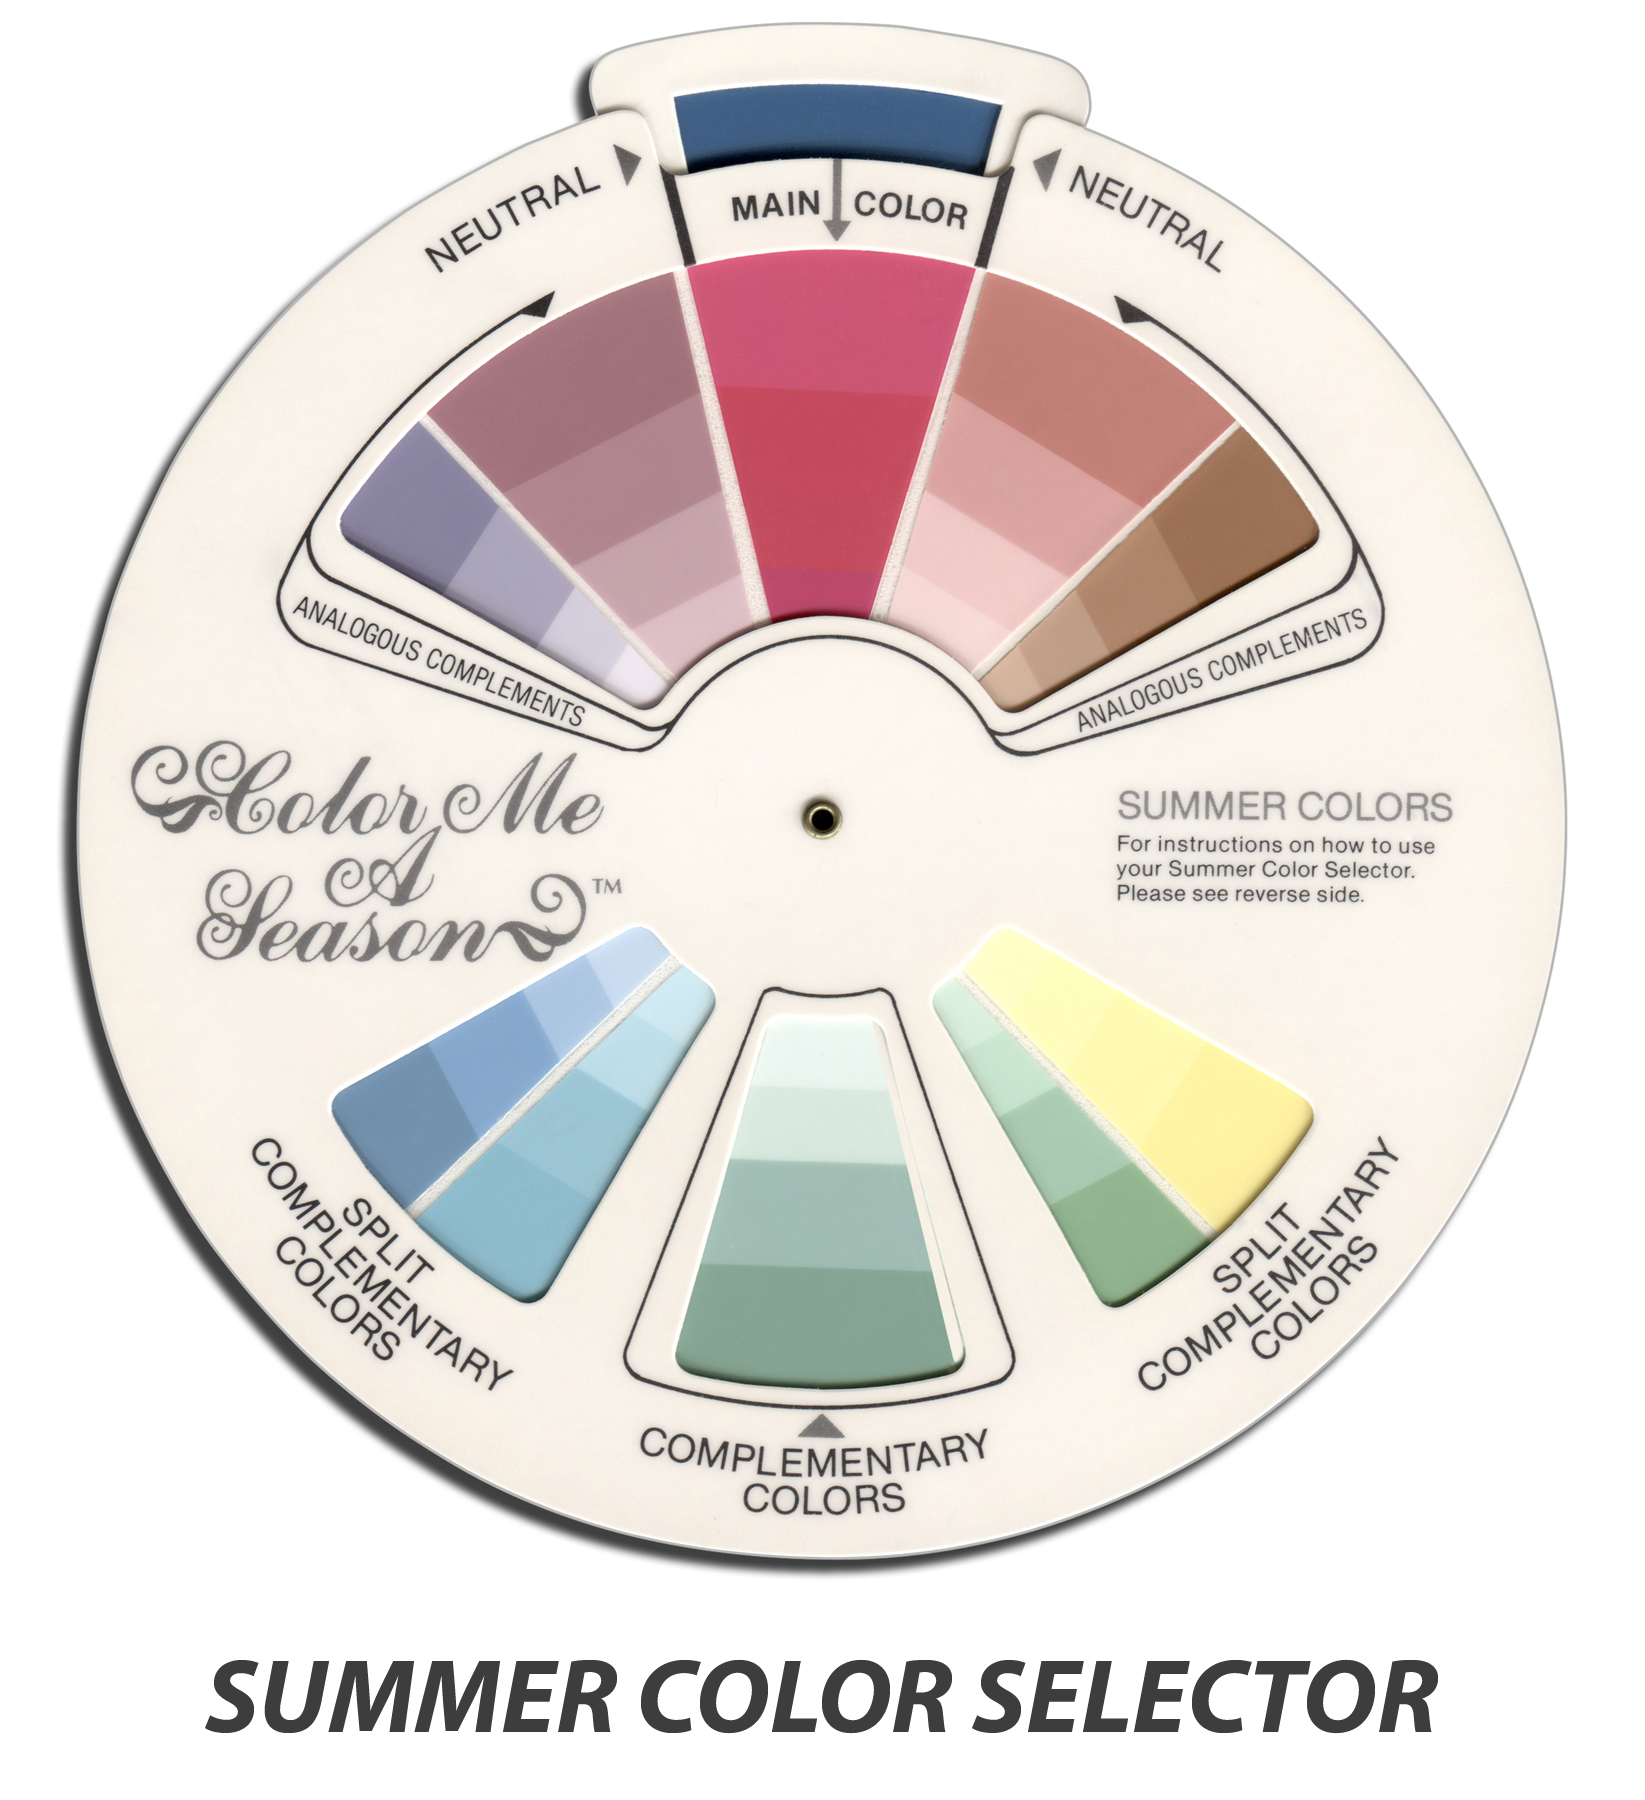 summerselector-text-200ppi.jpg